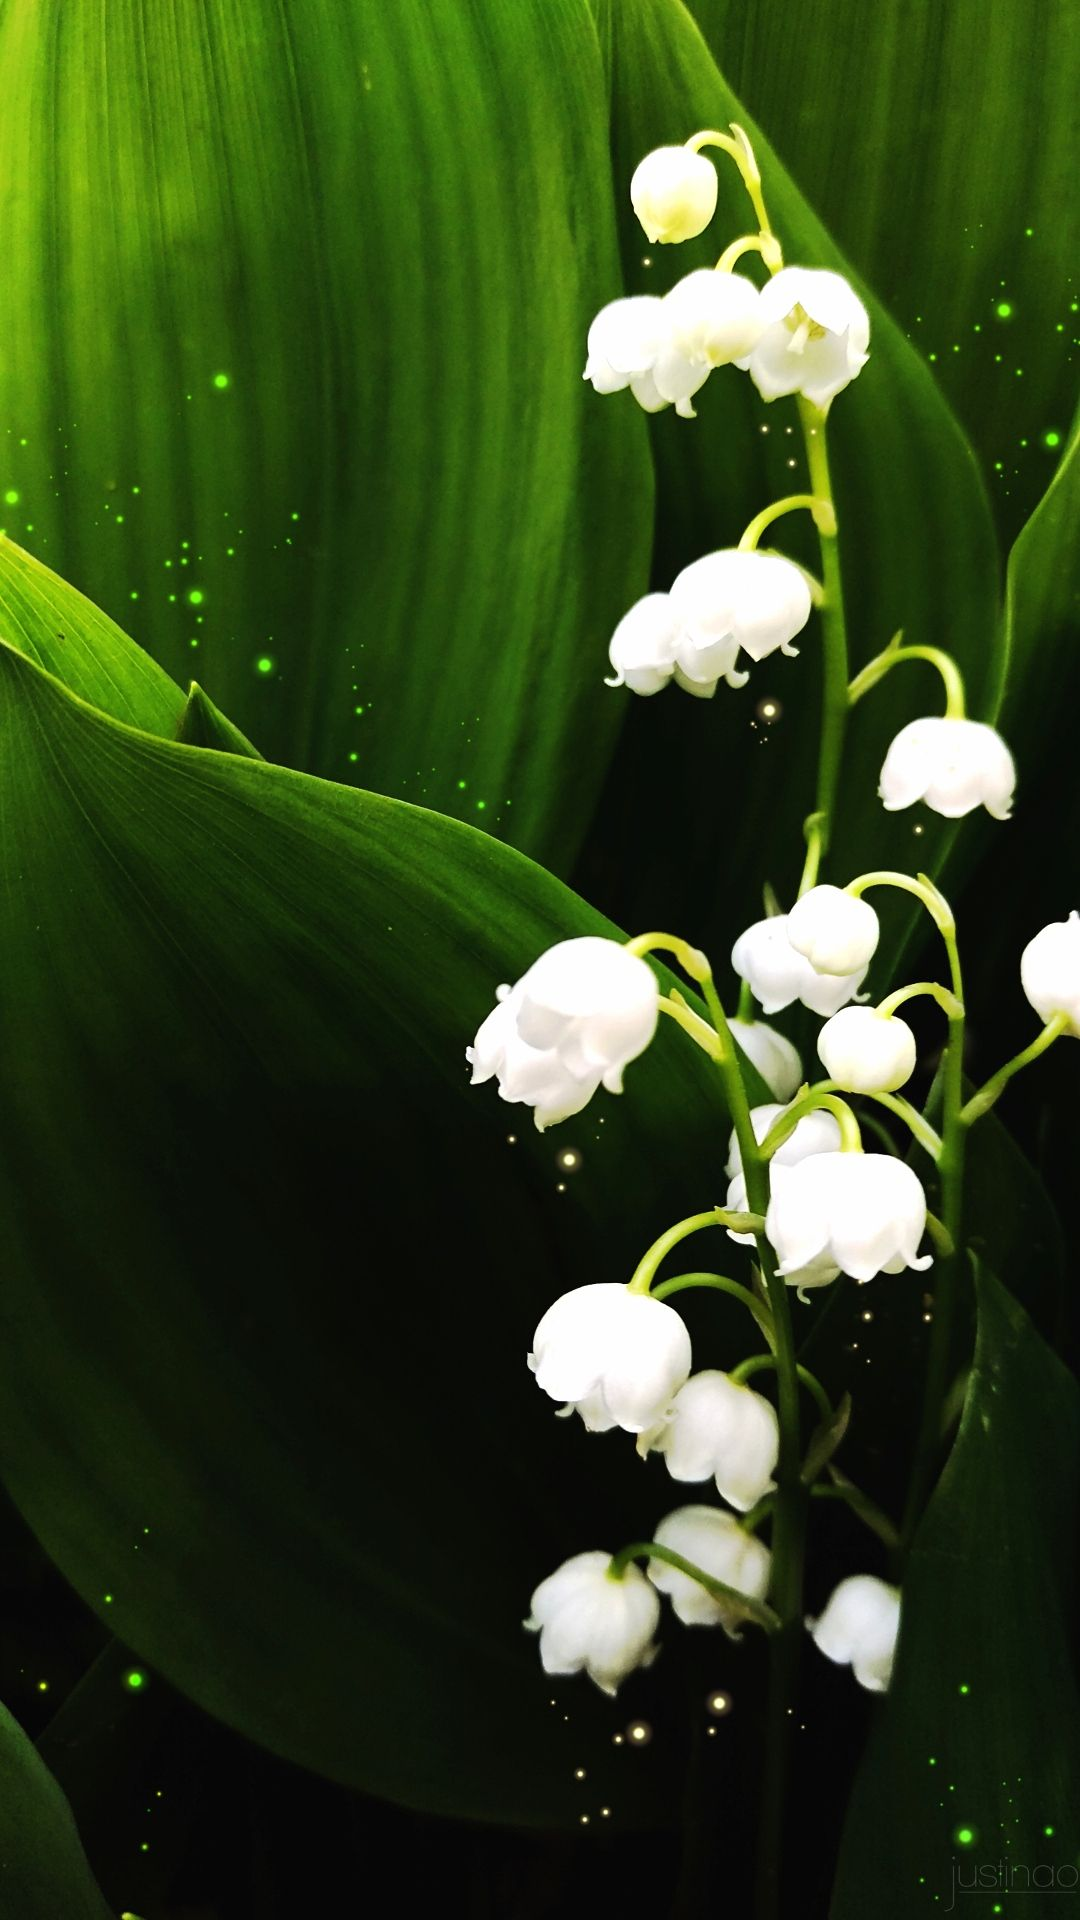 Lily Of The Valley Lily Of The Valley Flowers Flower Background Wallpaper Flower Phone Wallpaper Coolest bell flower wallpaper